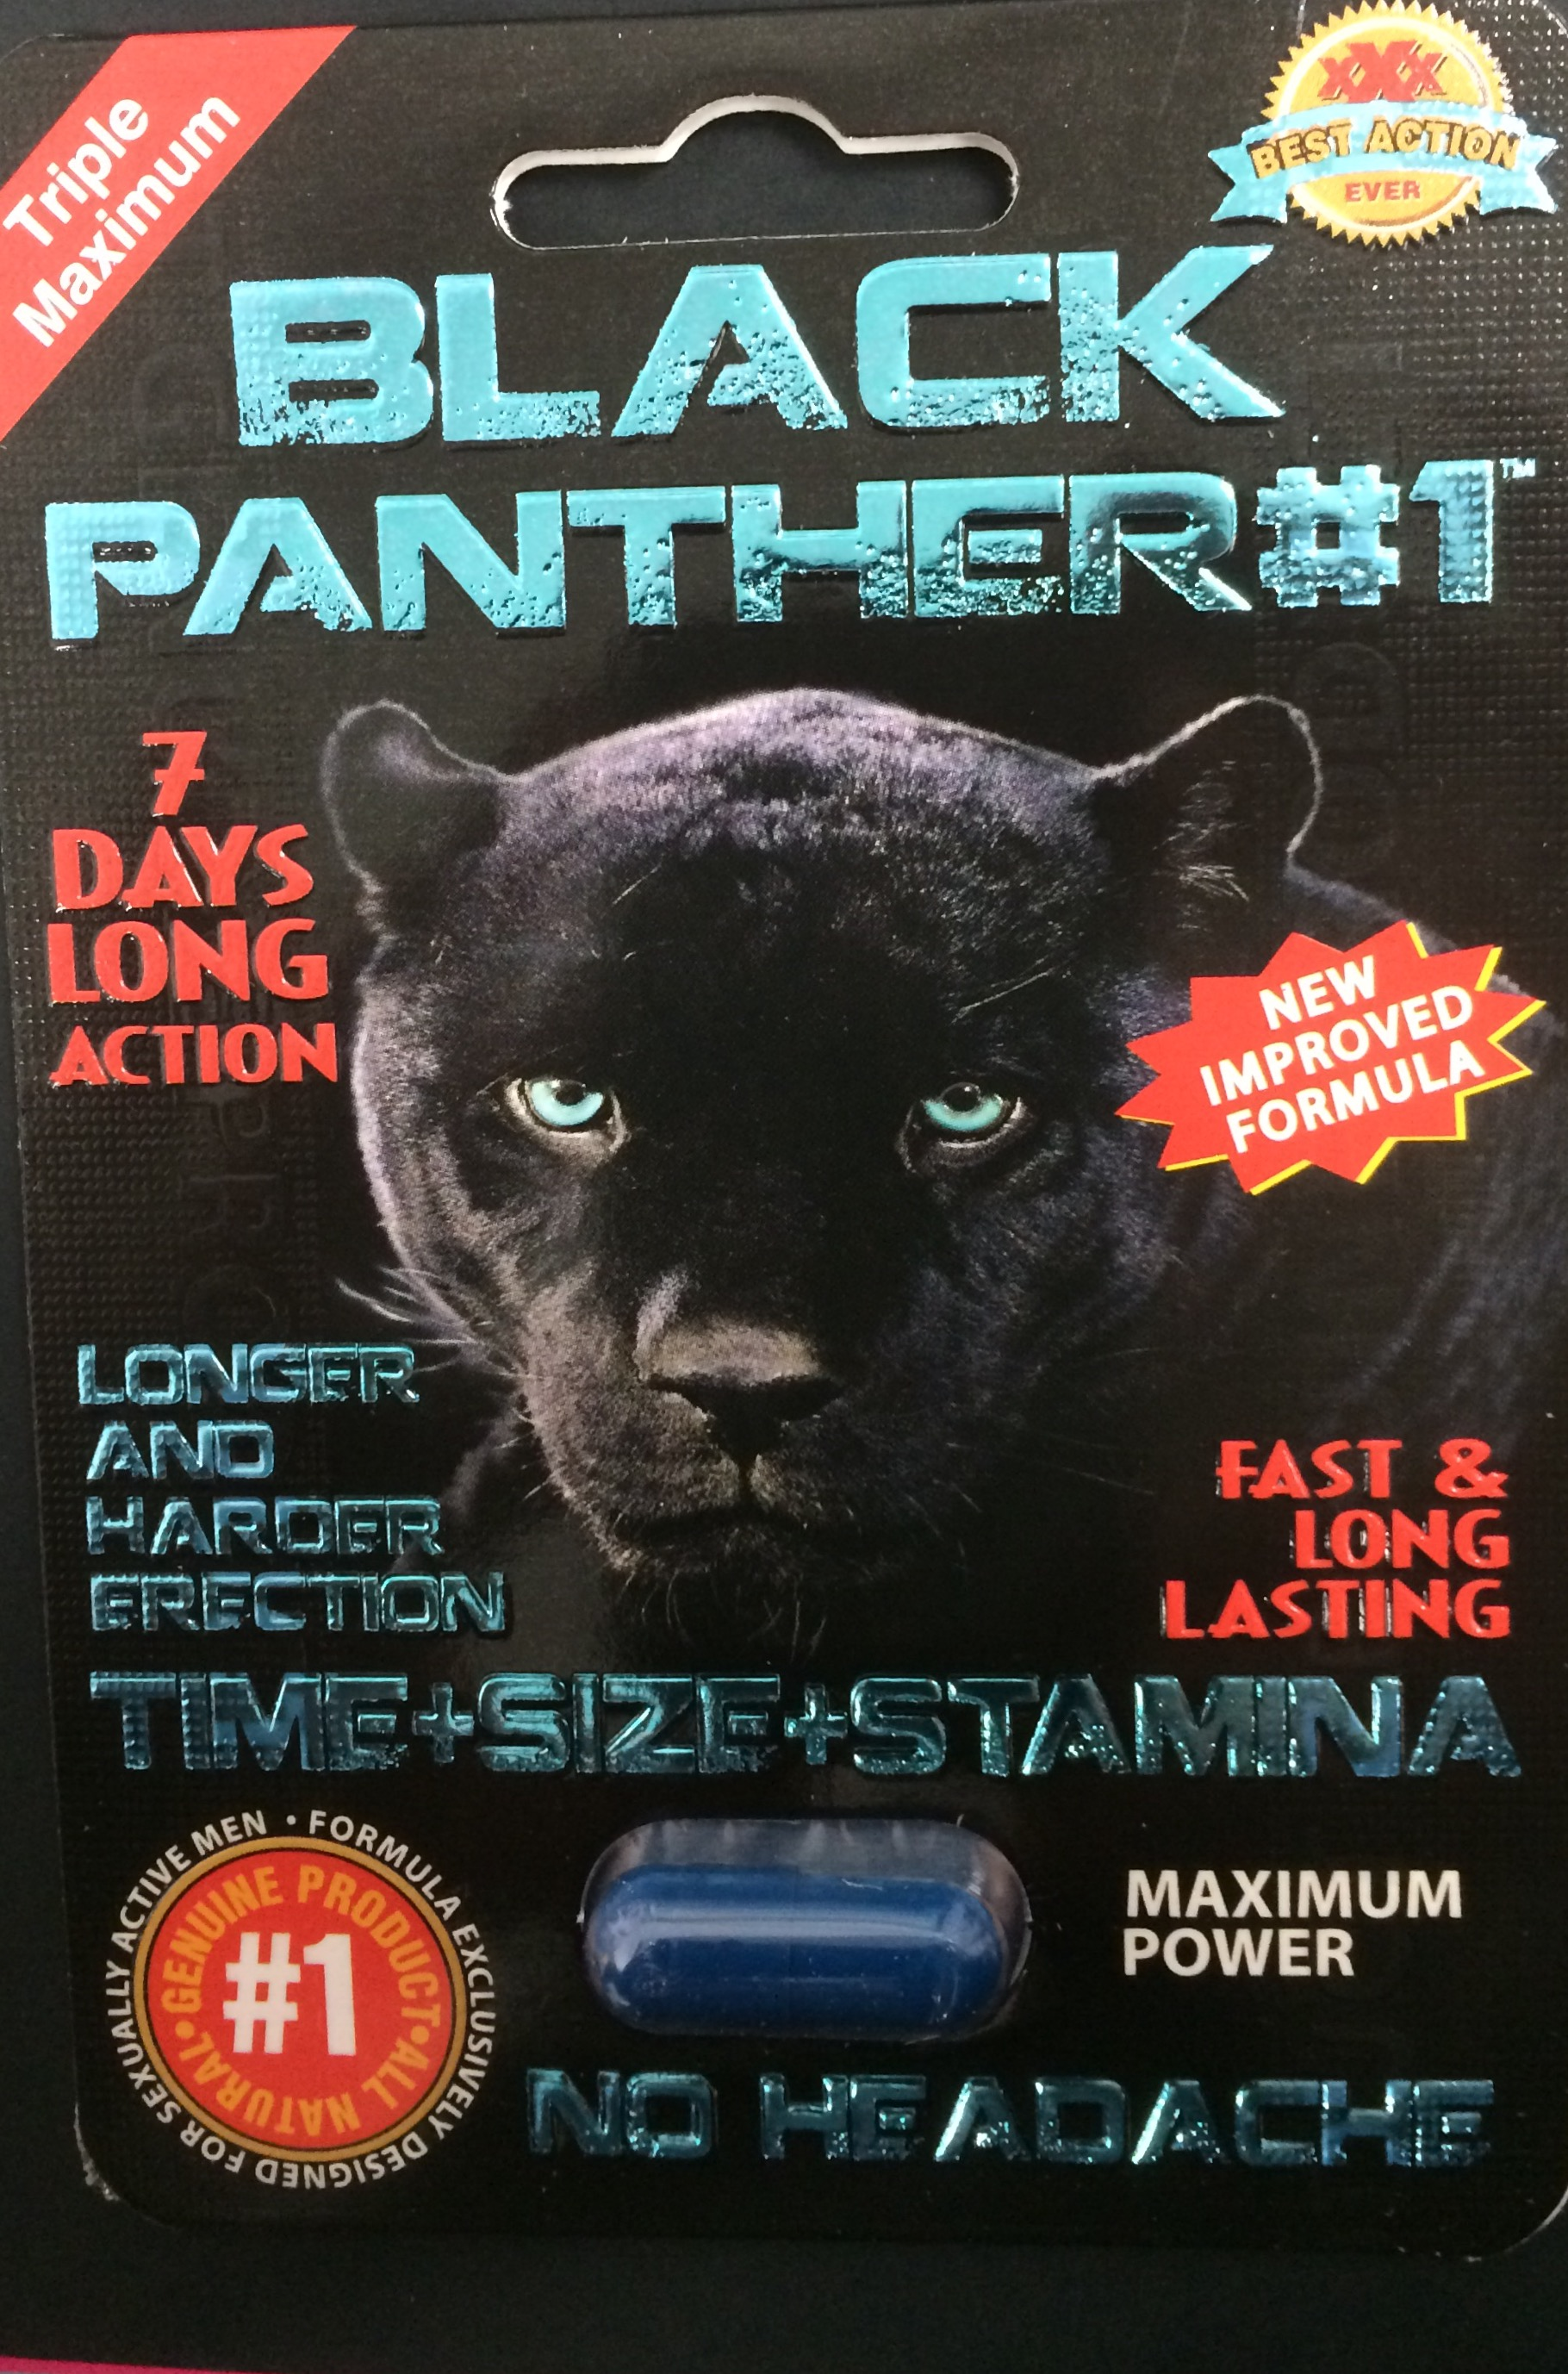 BLACK PANTHER EACHES